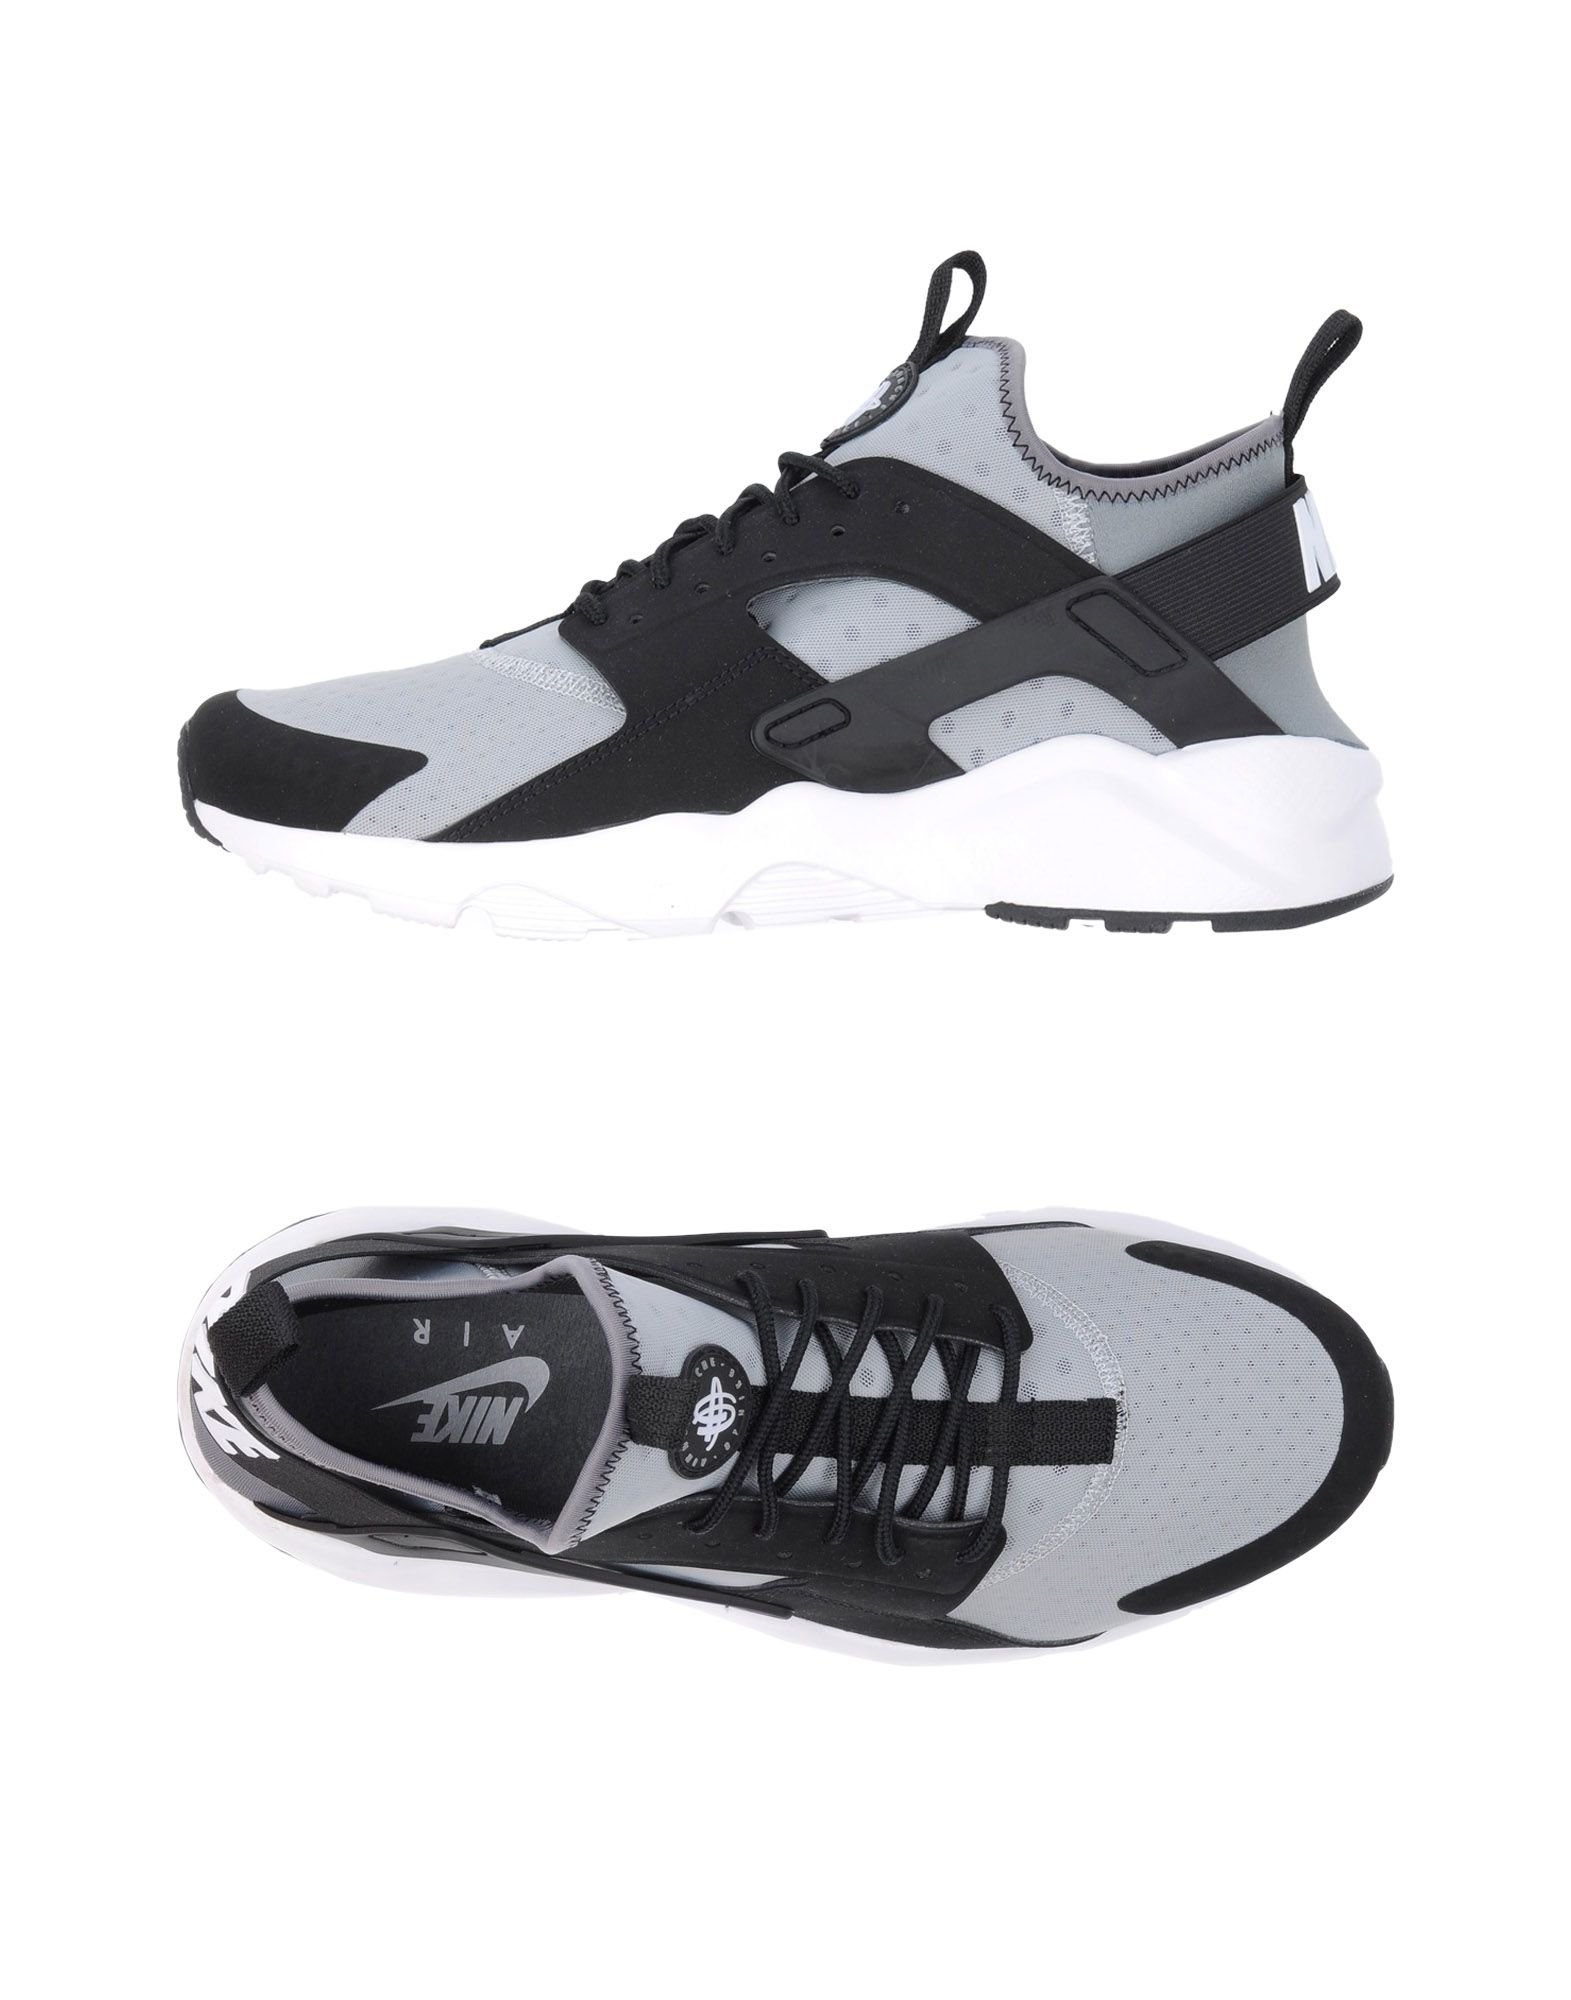 Sneakers Nike Homme - Sneakers Nike  Gris clair Chaussures femme pas cher homme et femme